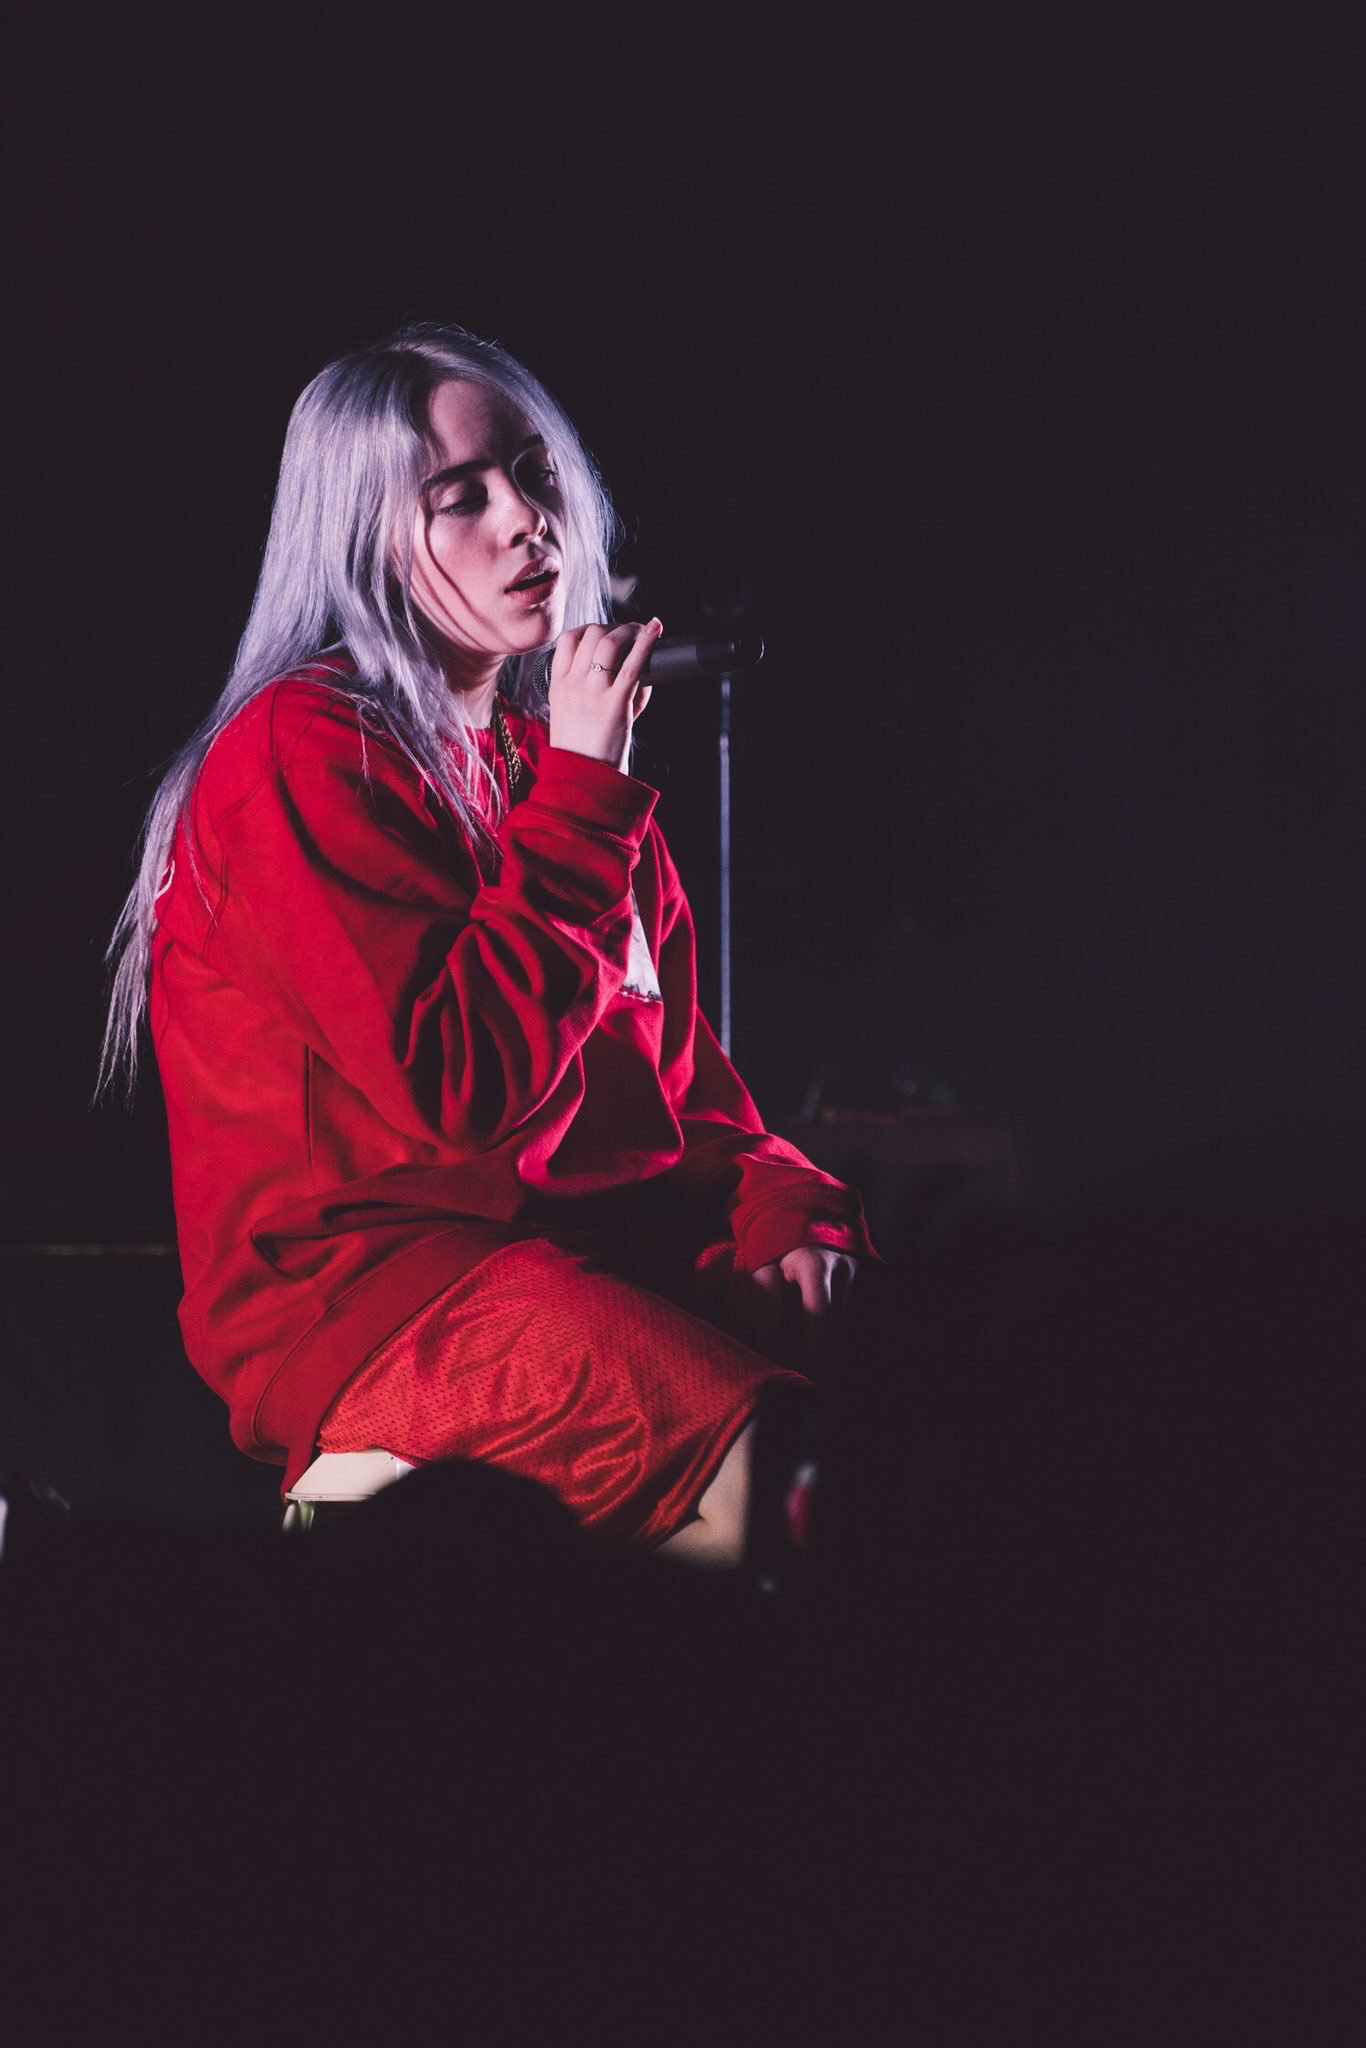 A Wild Billie Eilish Has Appeared In My Consciousness Billie Eilish Billie Singer